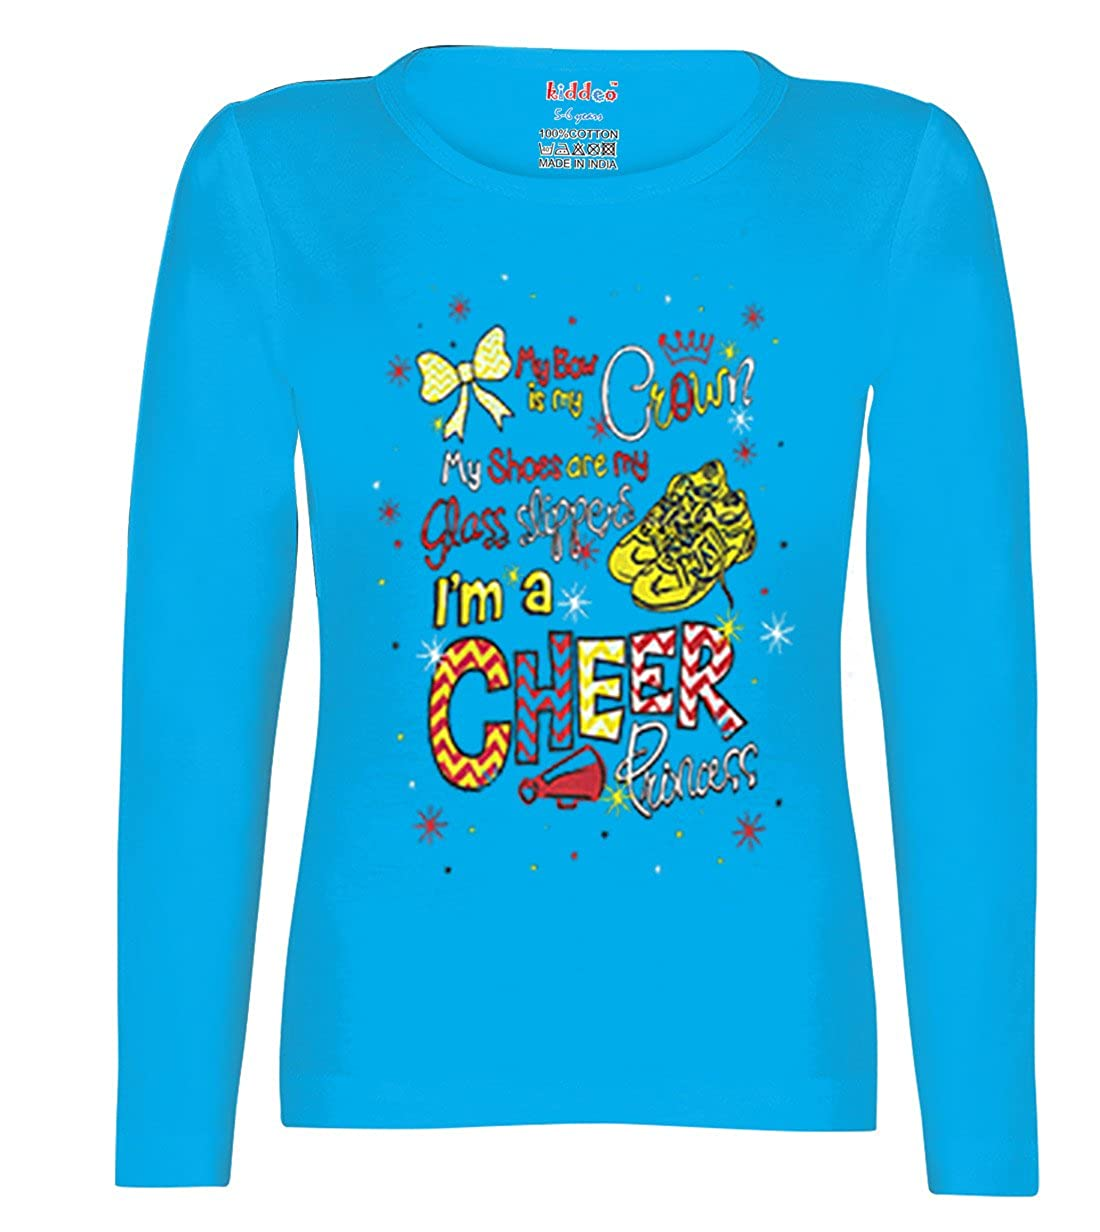 19d1d5119aa Kiddeo Girl s Cotton Full Sleeve T-Shirts - Pack of 5  Amazon.in  Clothing    Accessories